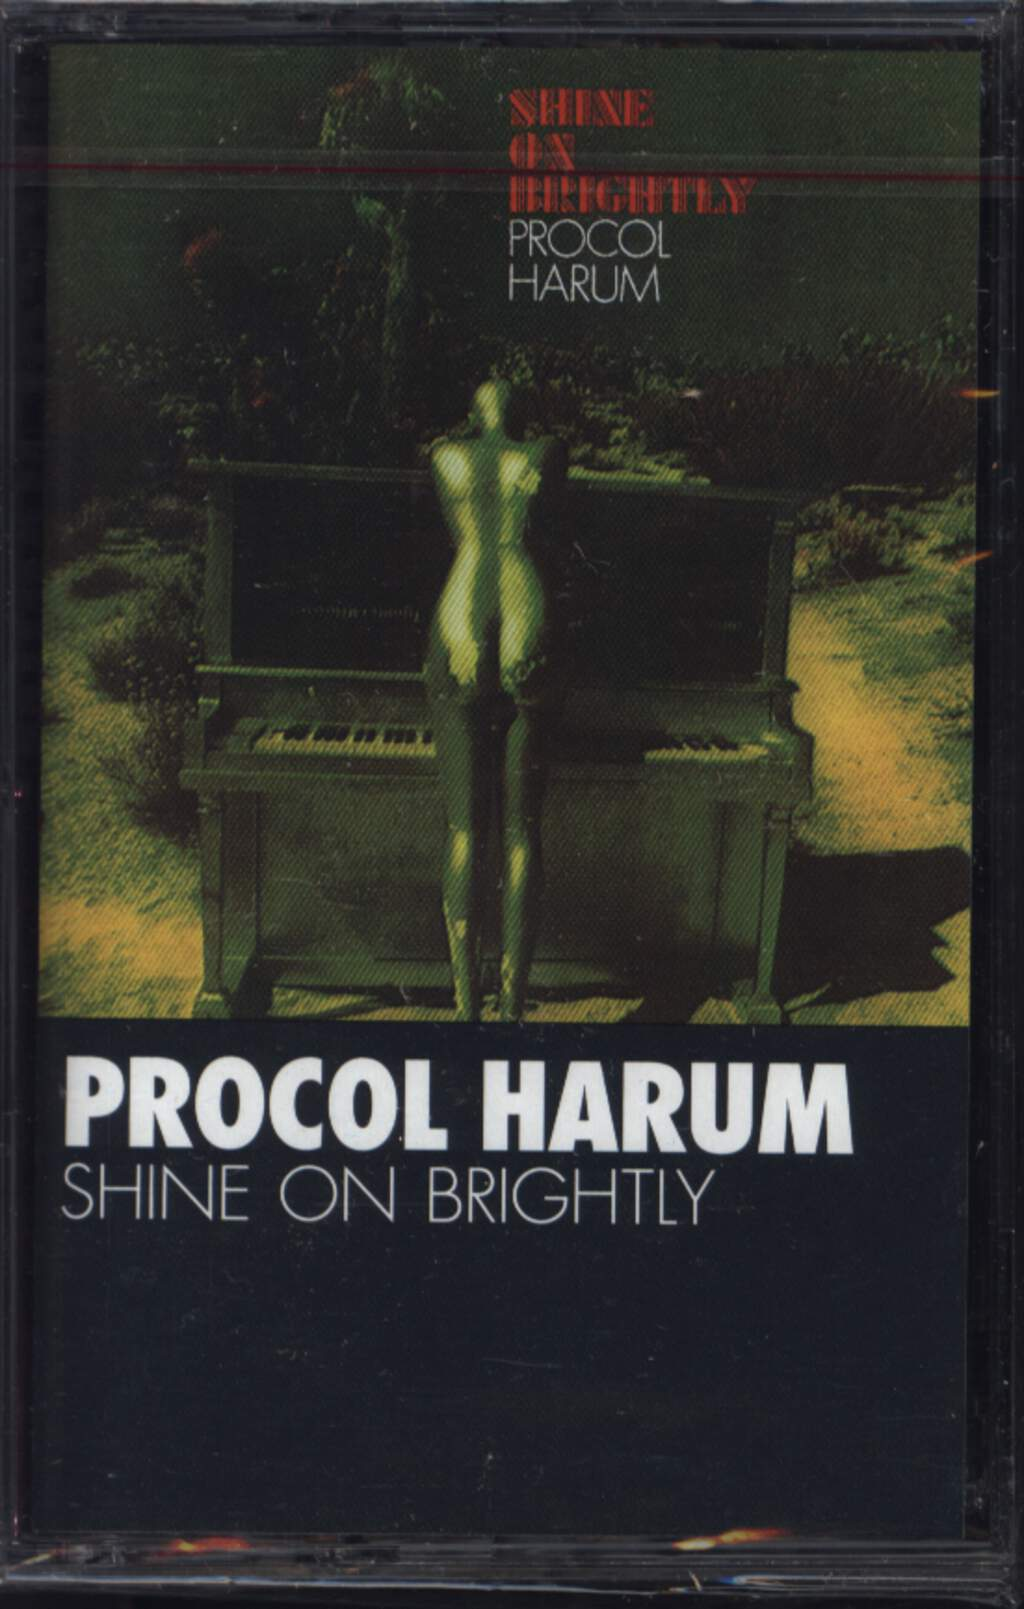 Procol Harum: Shine On Brightly, Compact Cassette